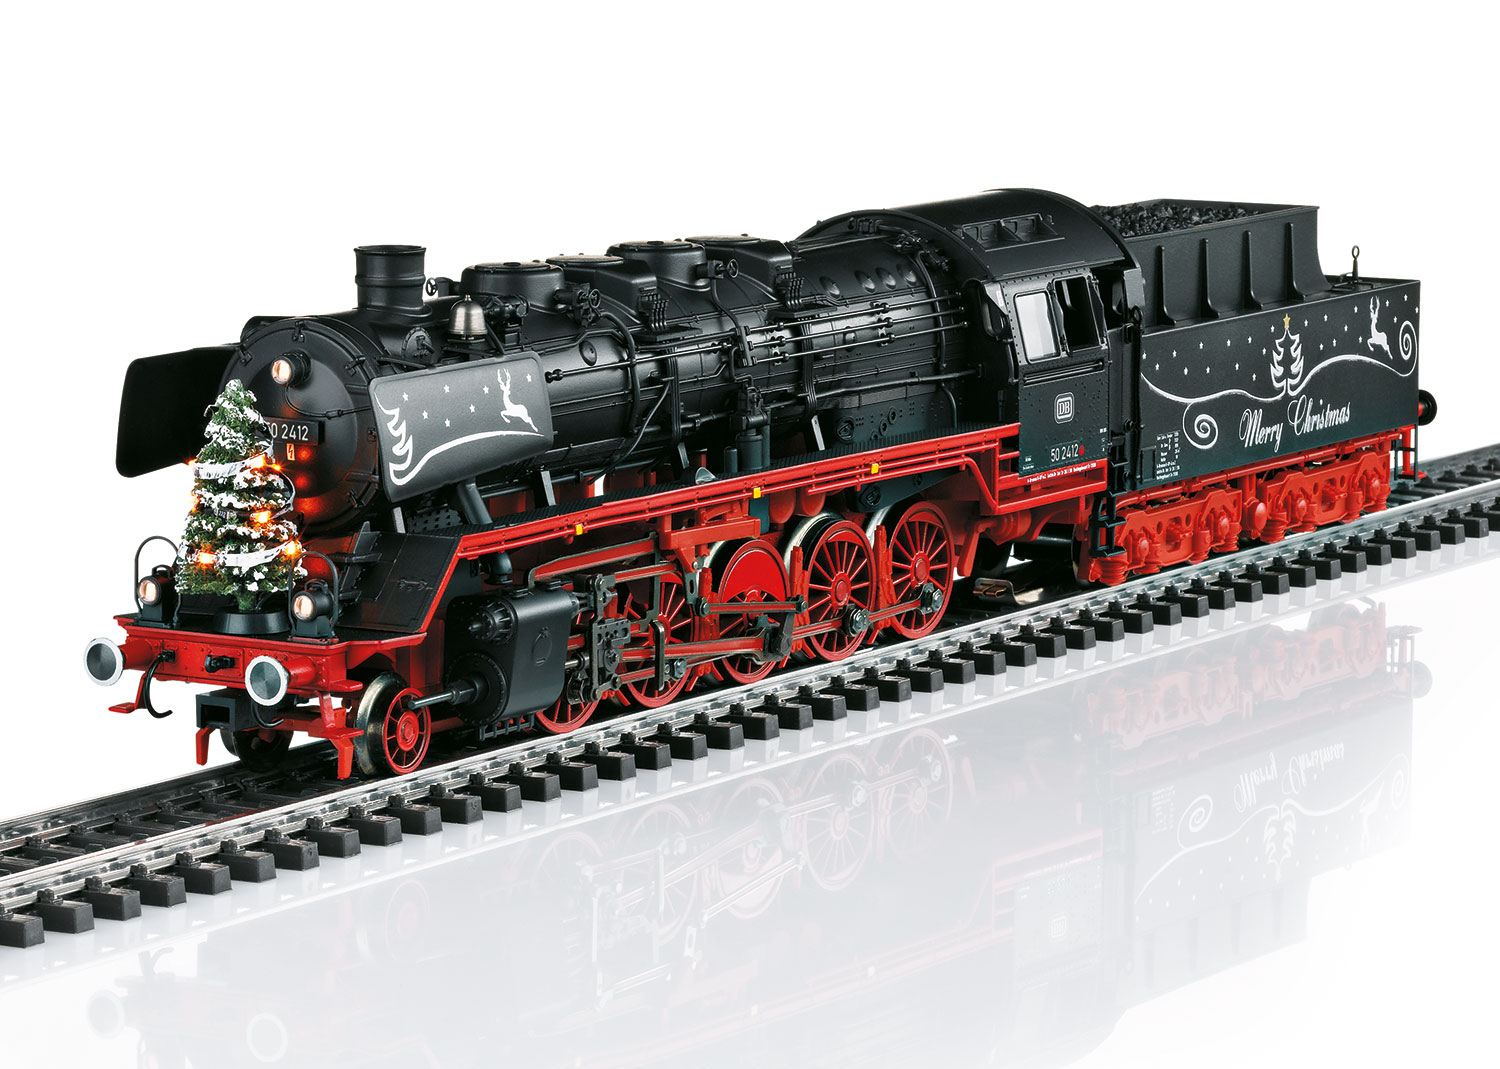 Christmas Steam Locomotive with a Tender.